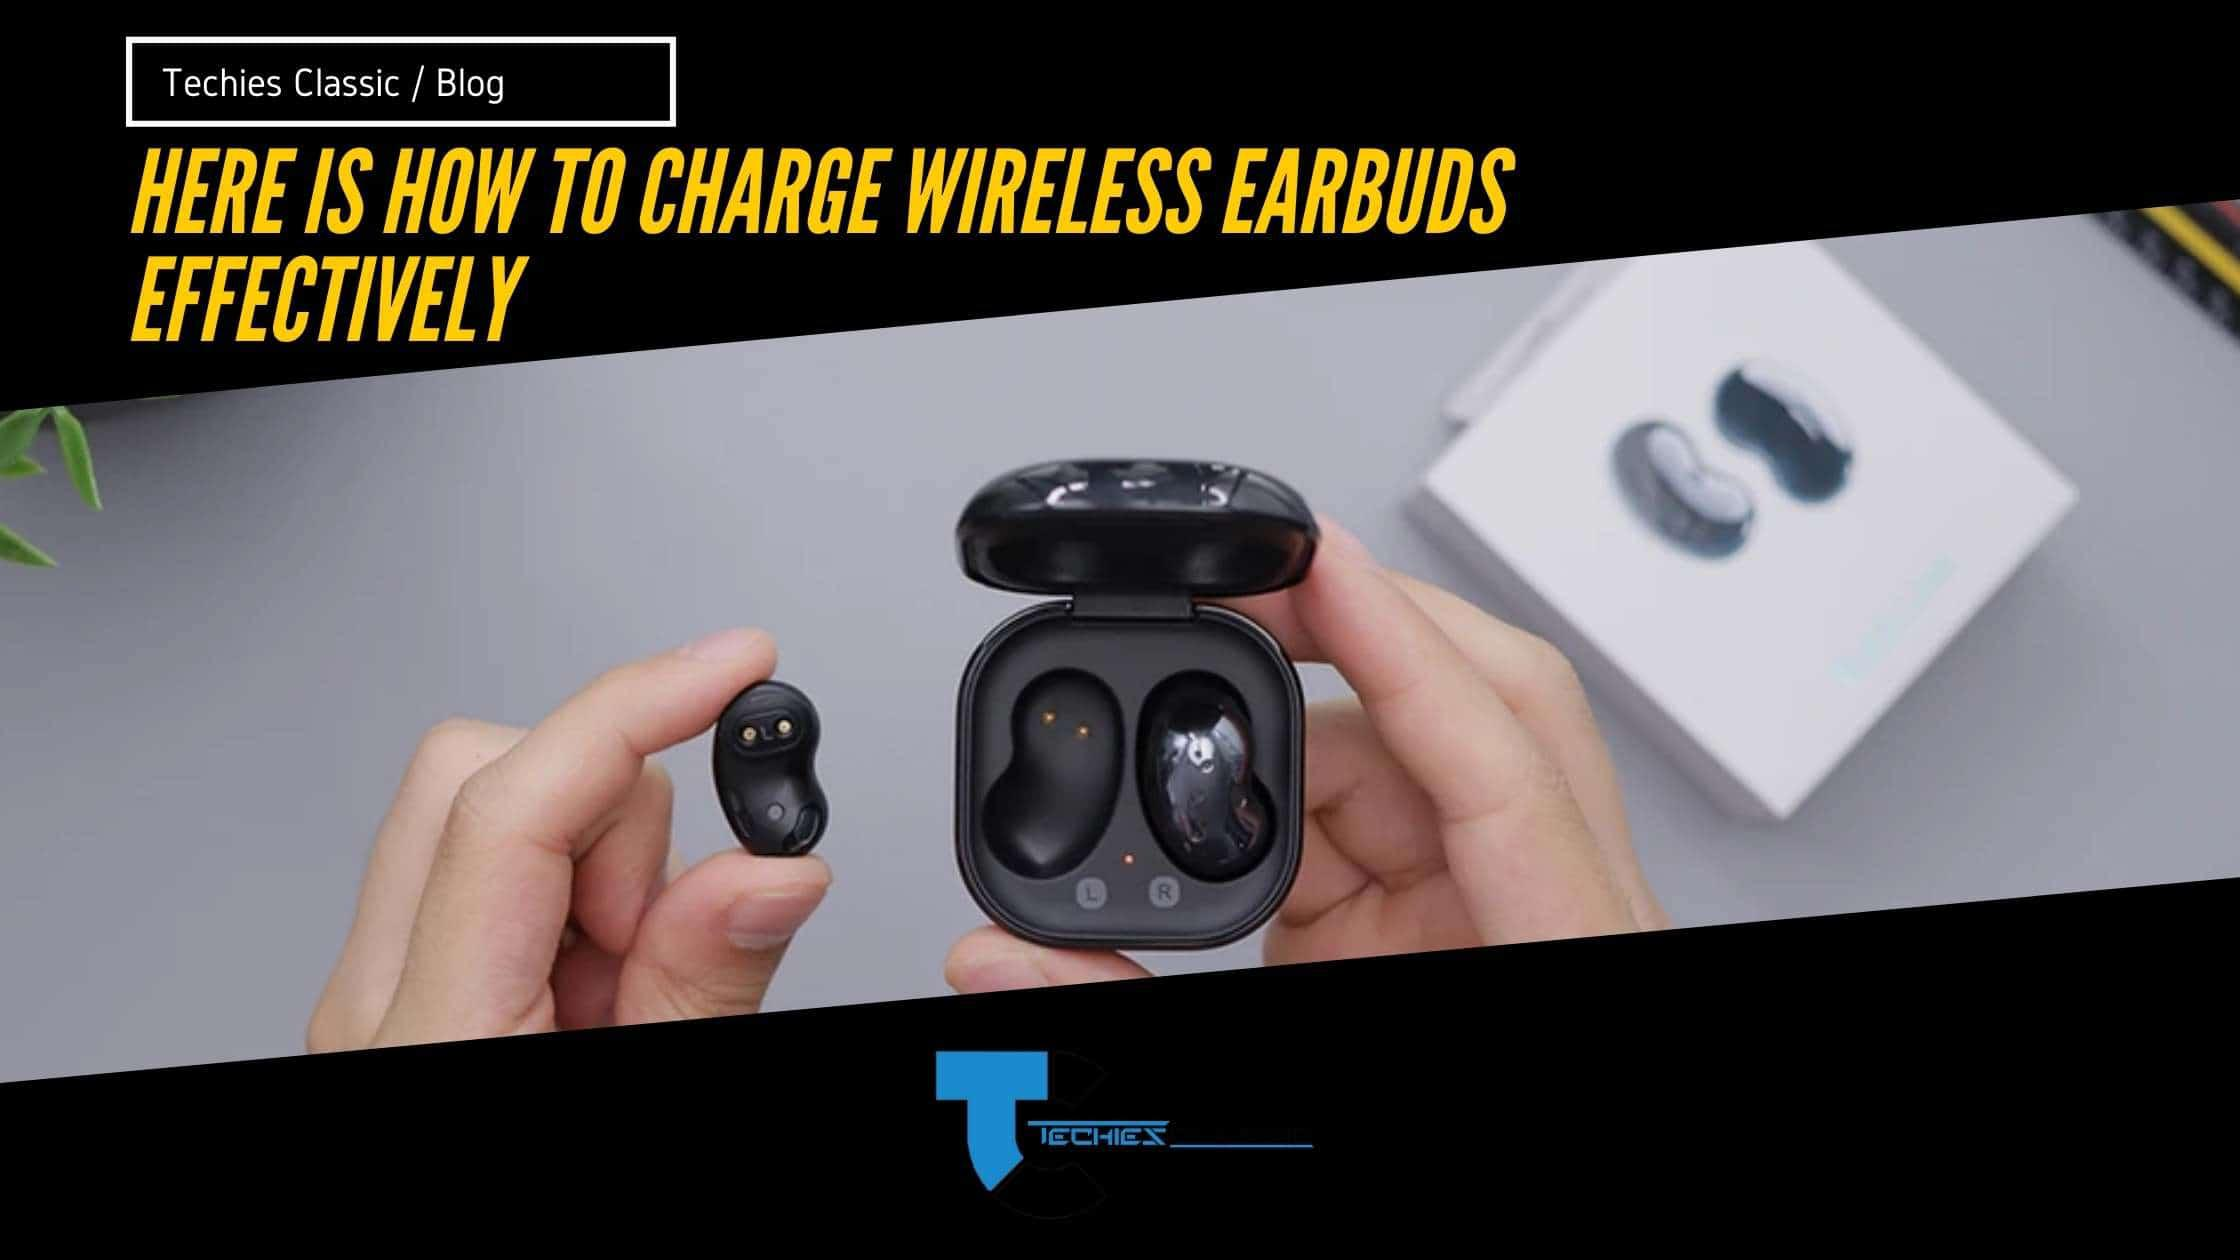 Here is how to charge wireless earbuds effectively